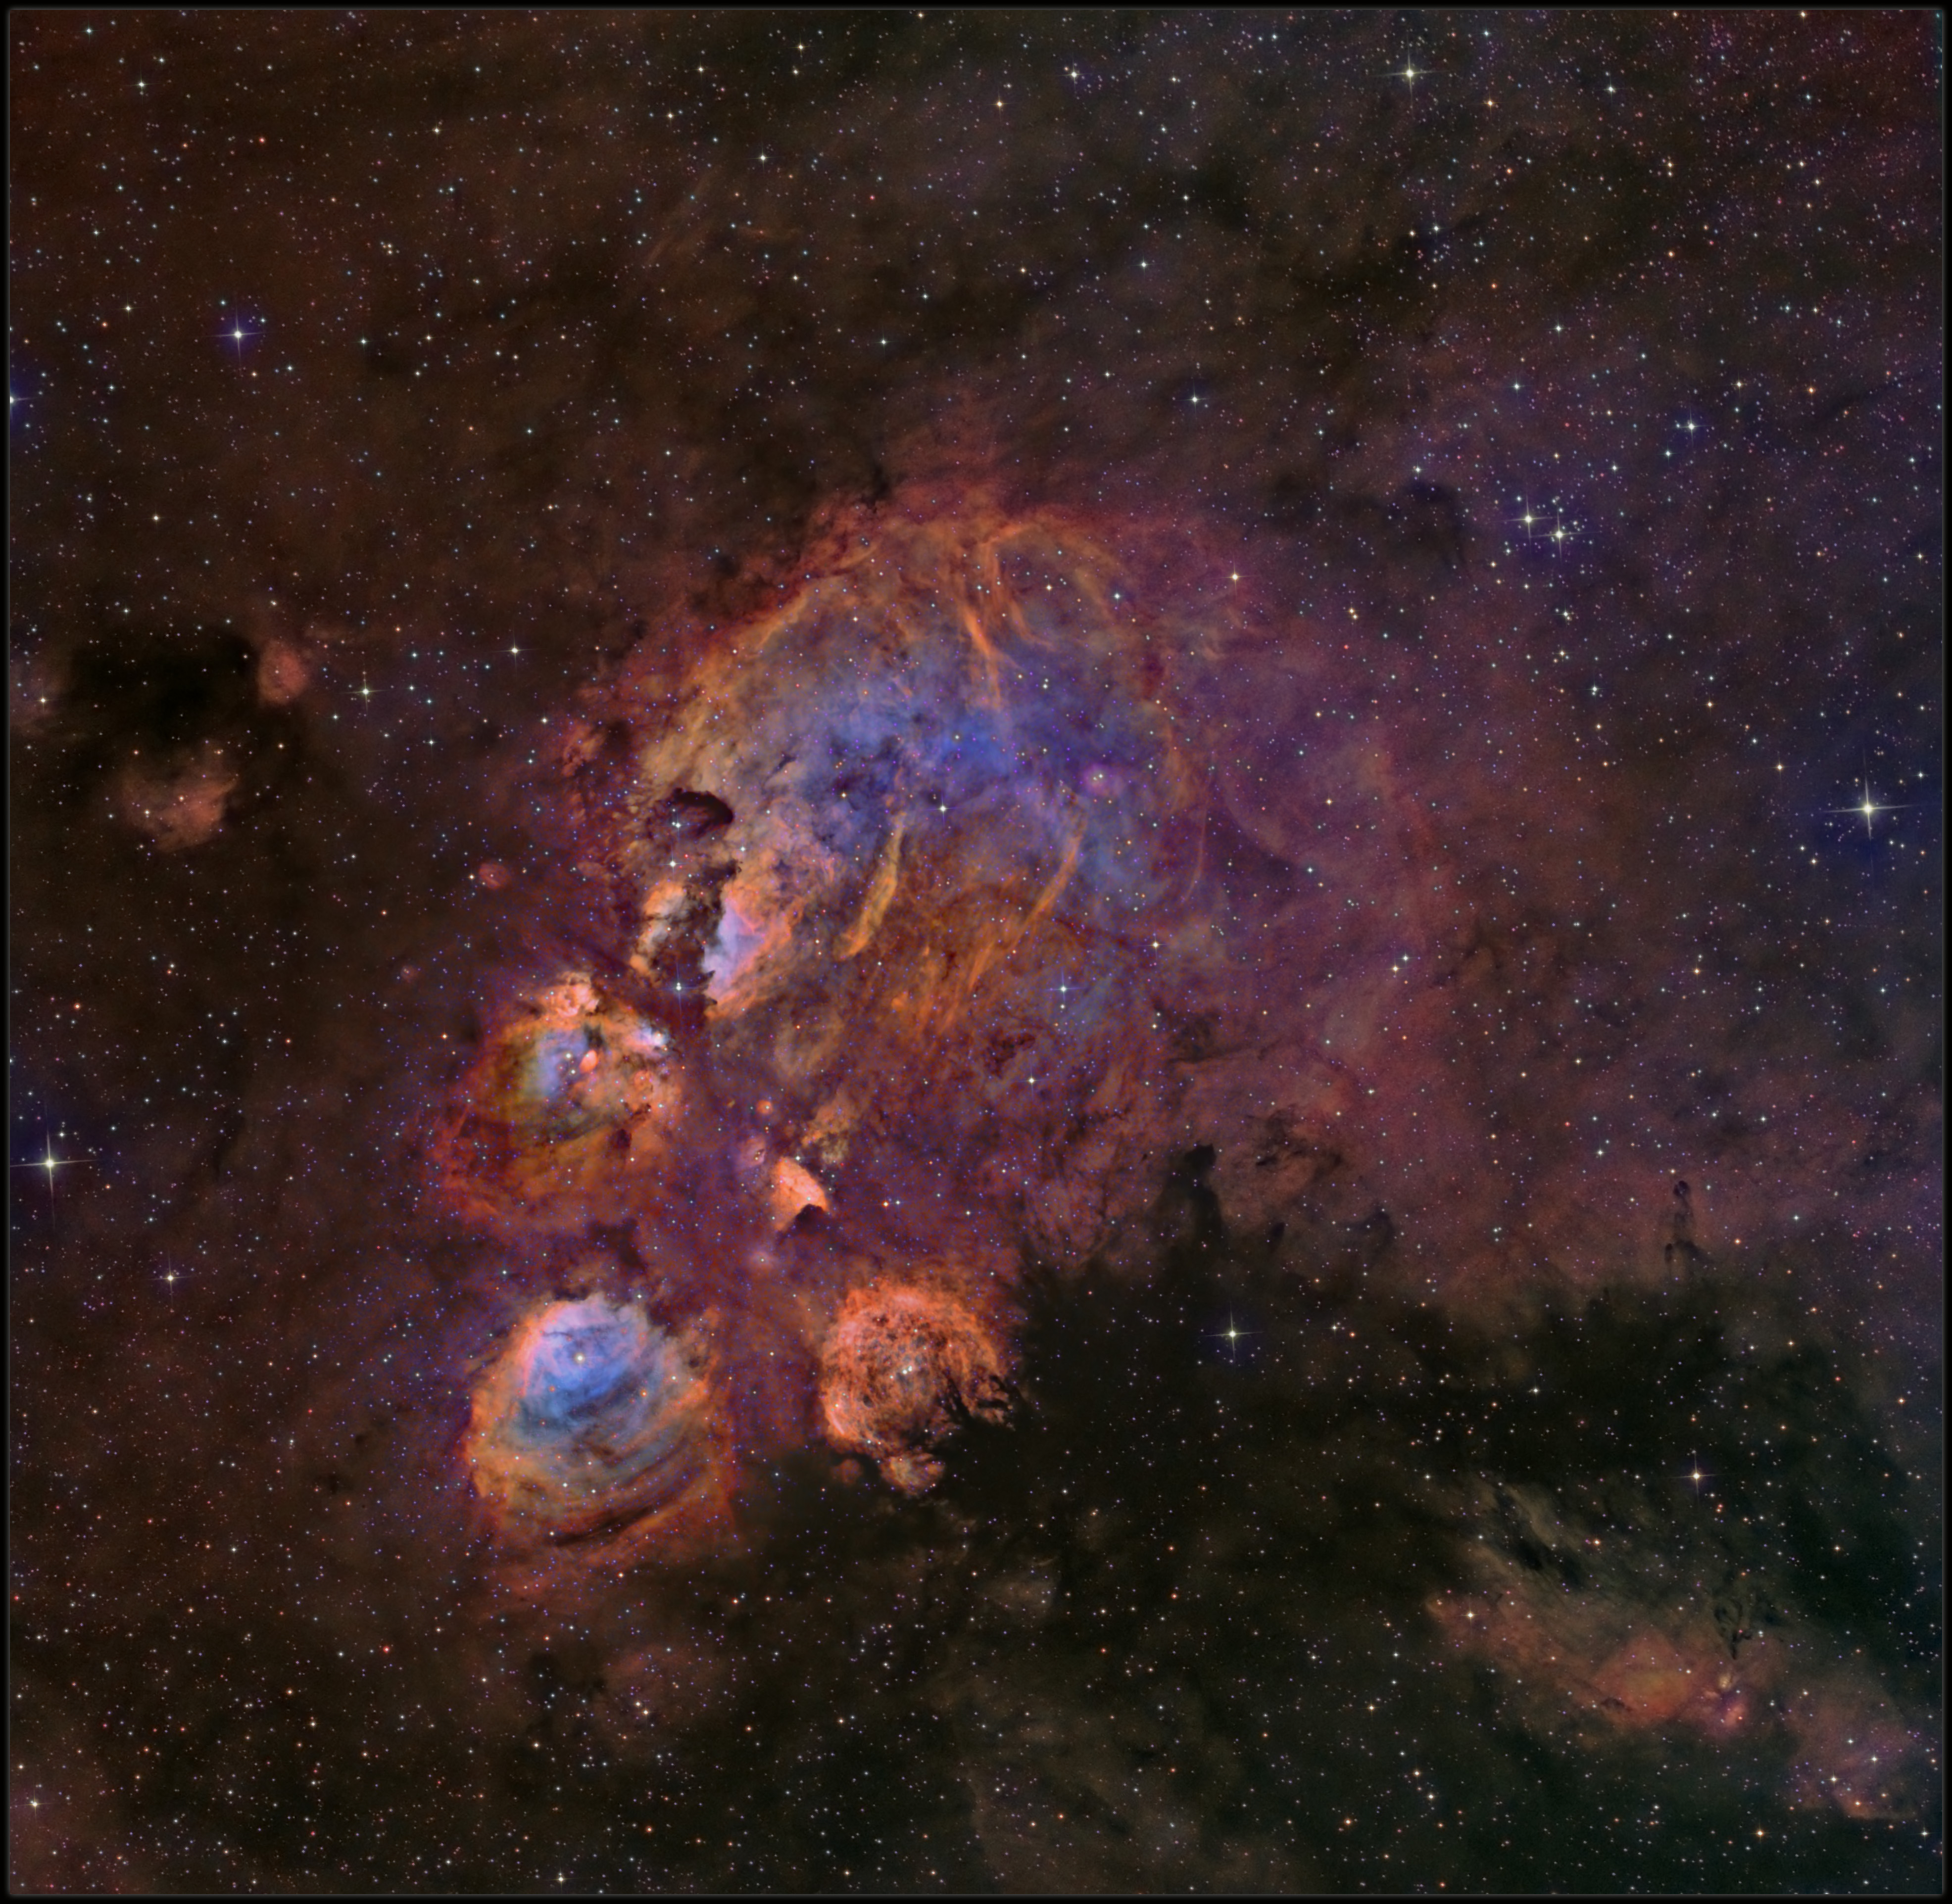 The Cats paw nebula In Hubble color mapping